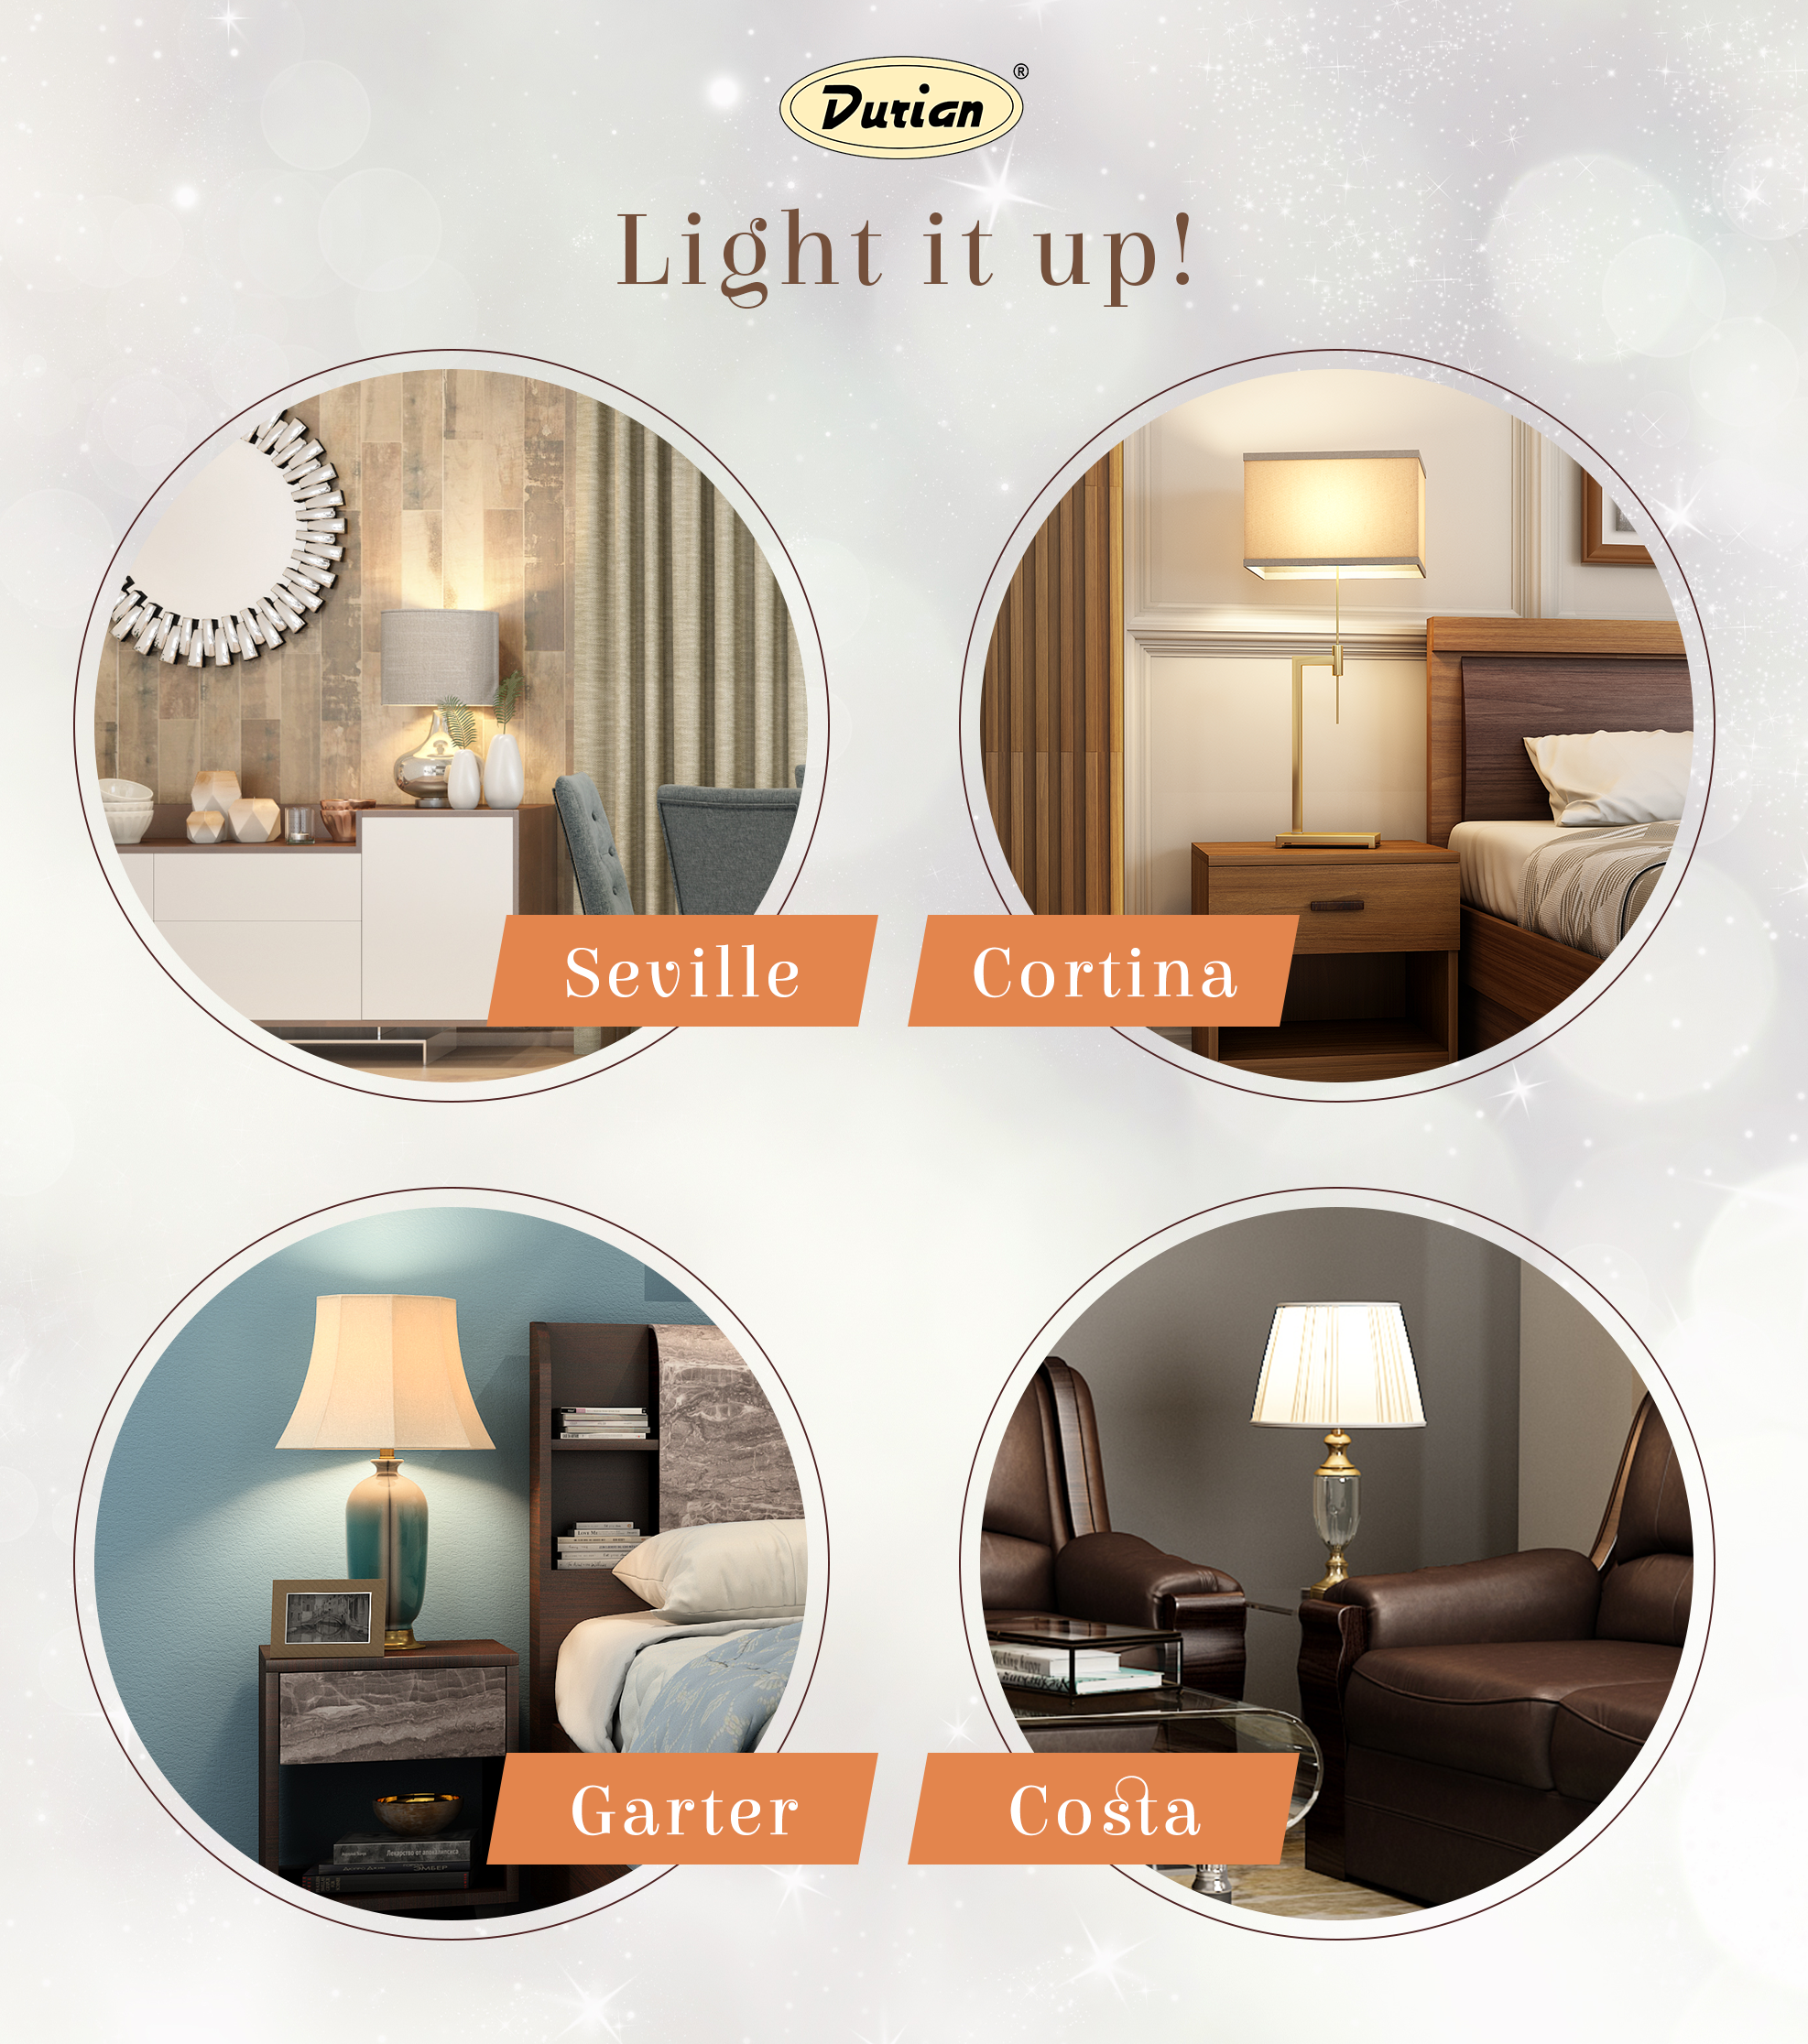 Put together a warm corner with lamps, paintings and mirrors along with your collected antiques and decor from across your travels.  #DurianFurniture #RoomDecorIDeas #Lamps #LampShades #LivingRoomDecor #BedroomDecorIdeas